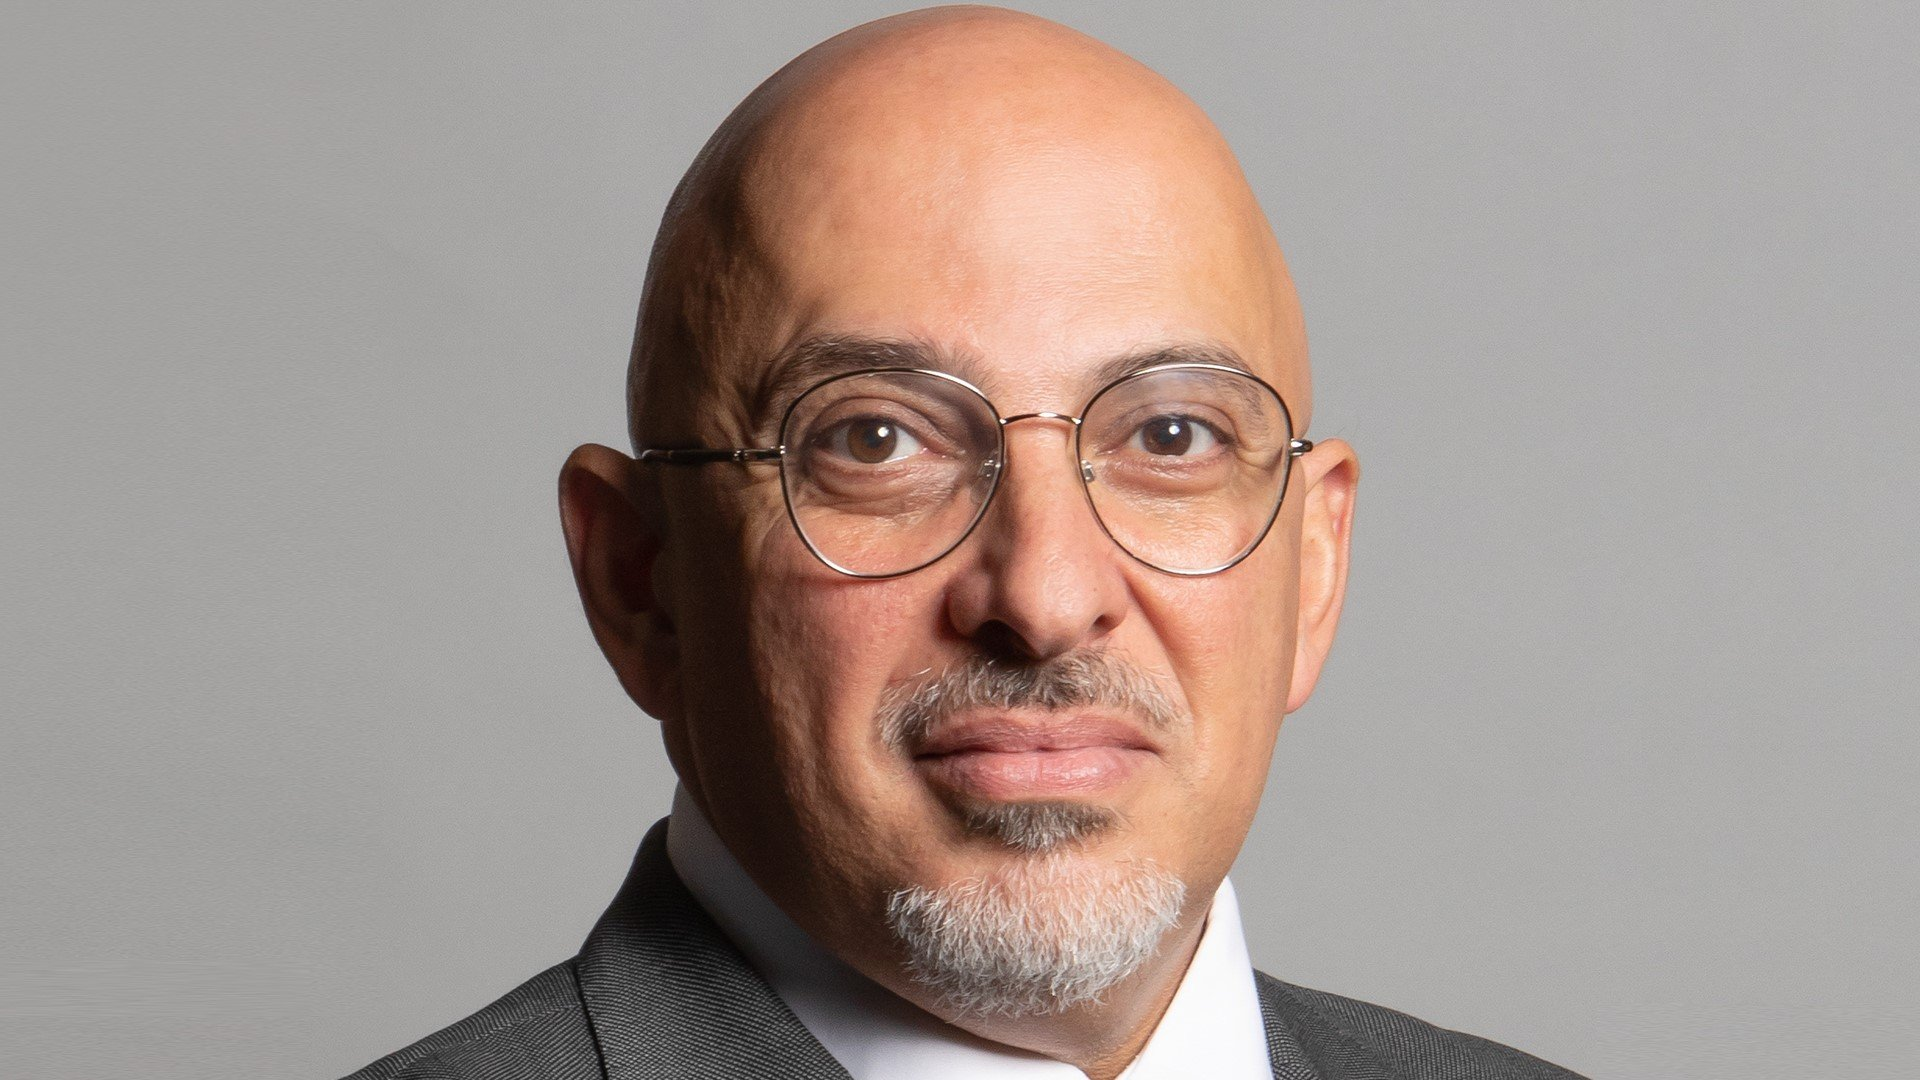 Mr Nadhim Zahawi MP for Stratford-on-Avon appointed as as a new health minister to oversee the rollout of the Covid vaccine in England